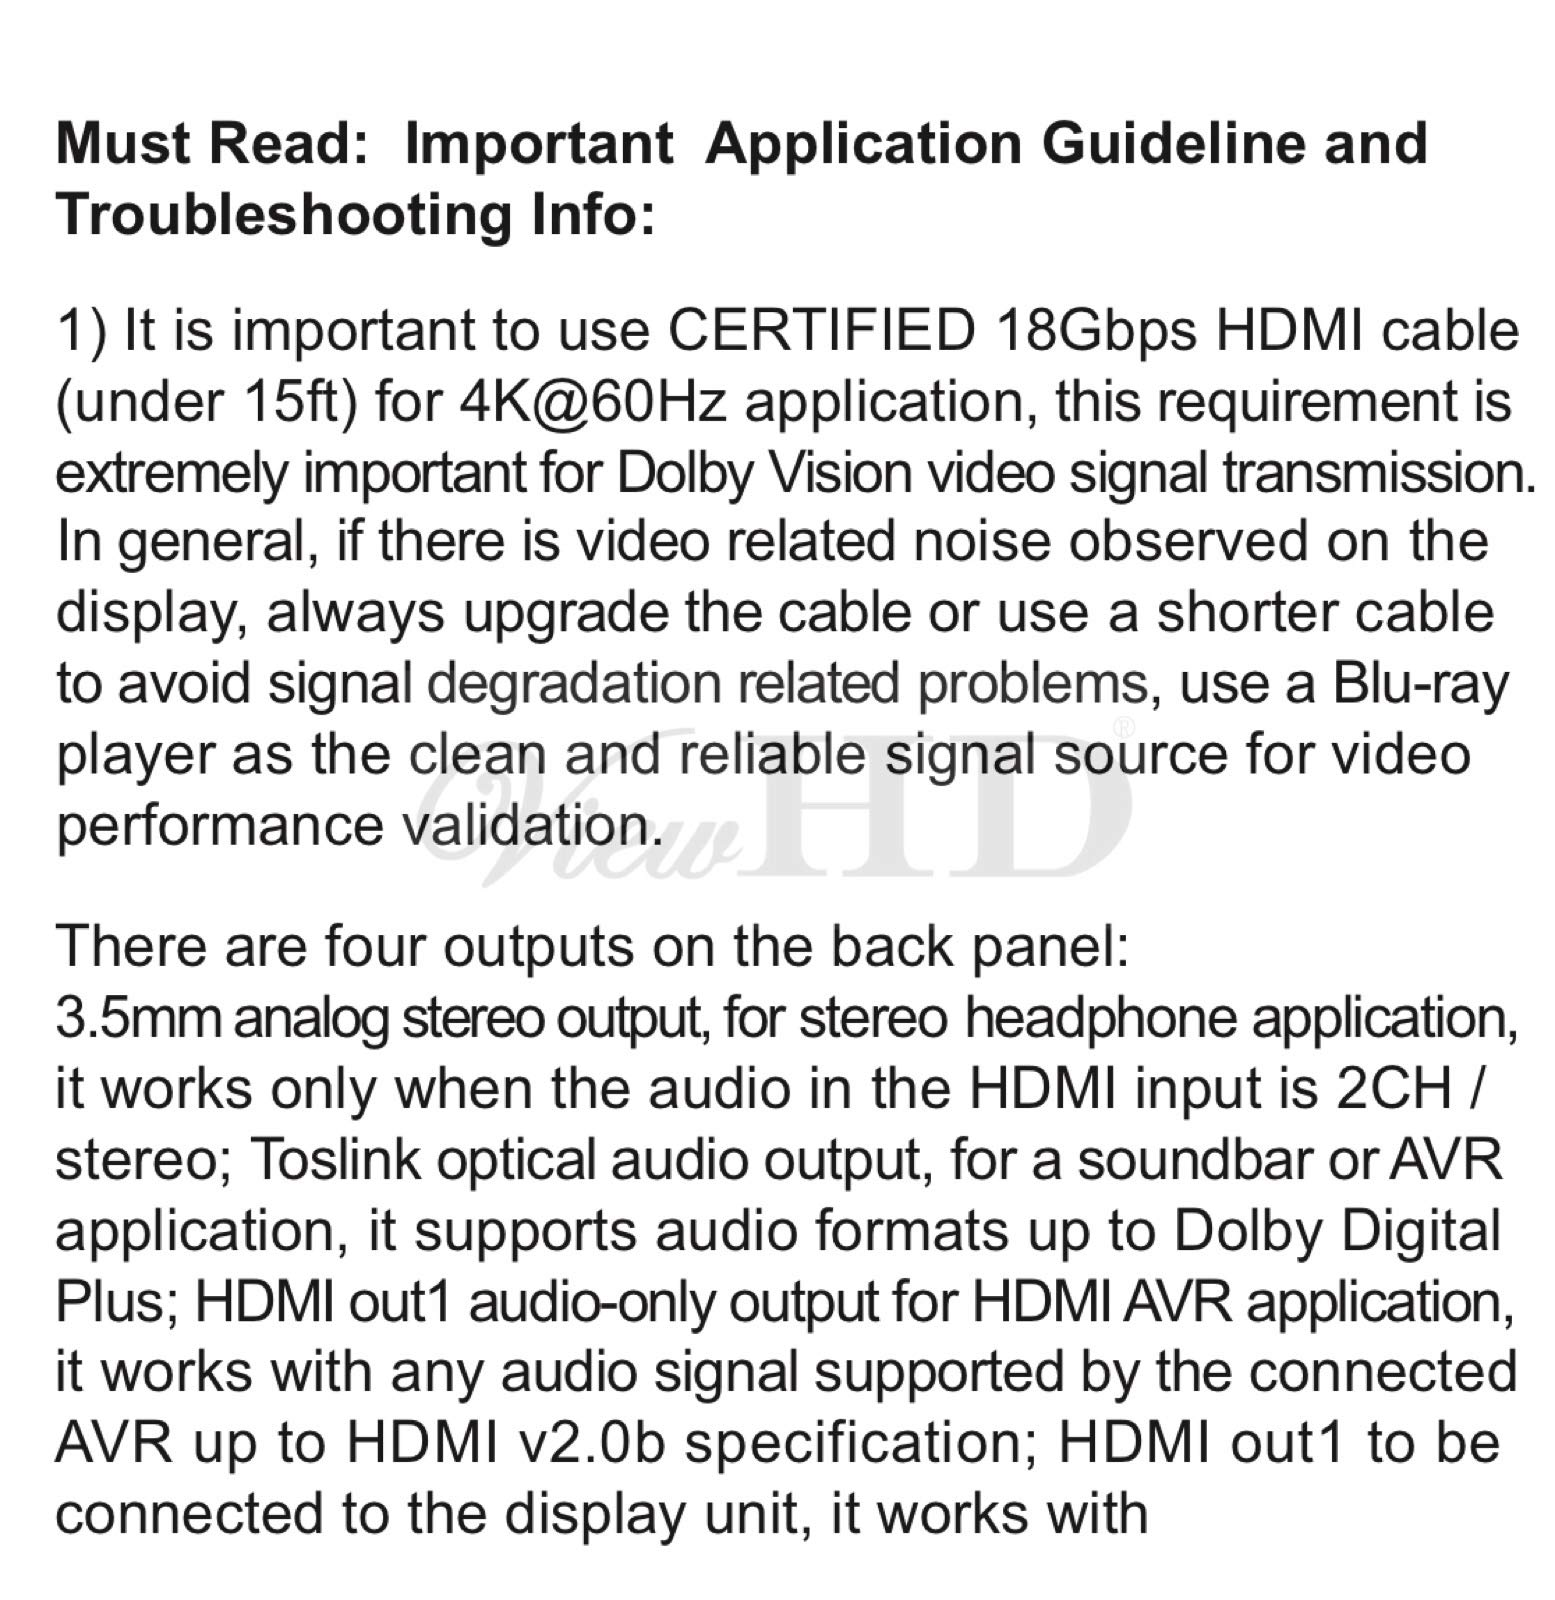 ViewHD UHD 18G HDMI Audio Extractor/Splitter Support HDMI v2.0 | HDCP v2.2 | 4K@60Hz | HDR | ARC | 3.5MM Analog Audio Output | Toslink Optical Audio Output | HDMI Audio Output | Model: VHD-UHAE2 by ViewHD (Image #4)